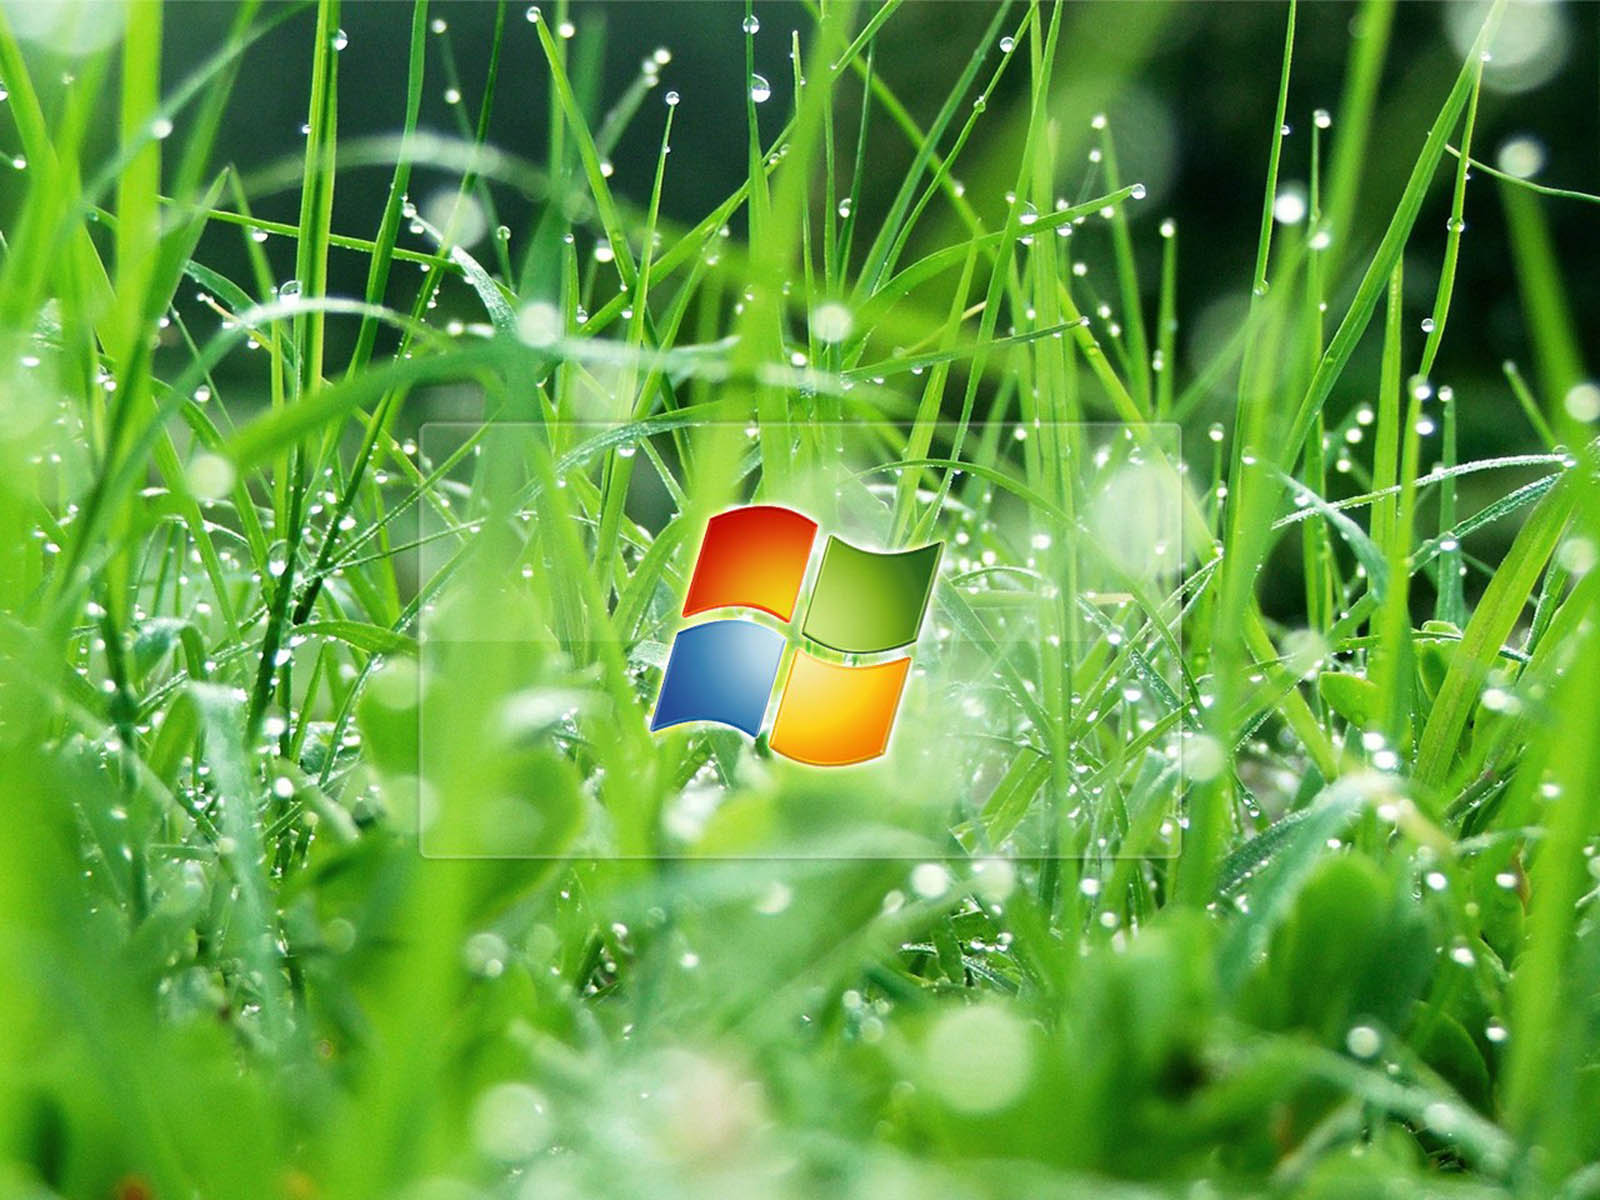 Xs Wallpapers Hd Windows Xp Wallpapers And Backgrounds